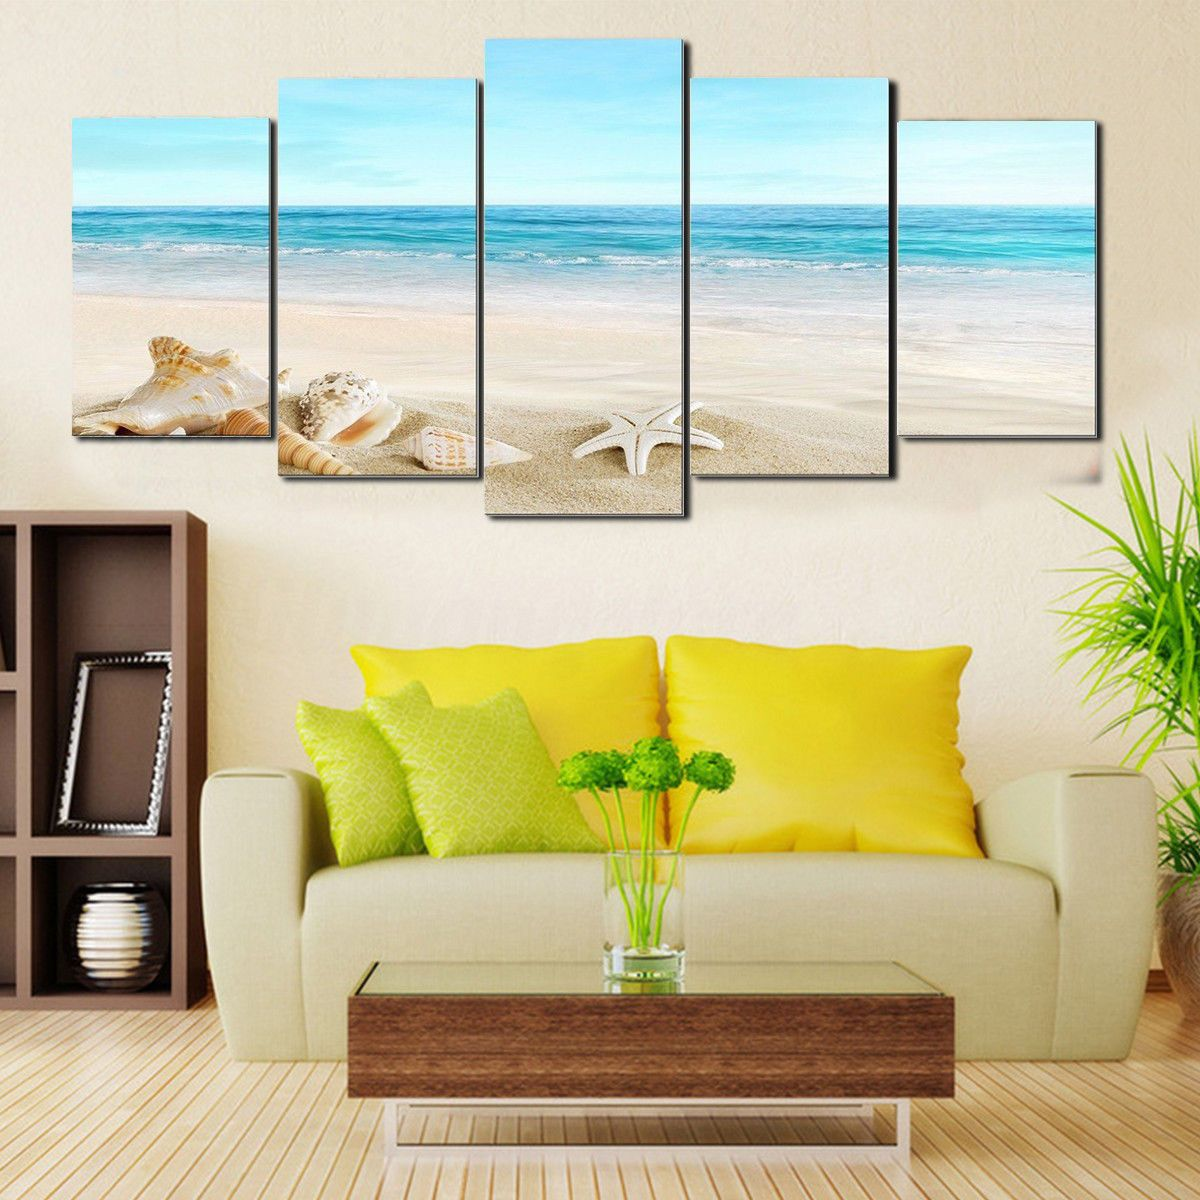 5Pcs Framed Sea Beach Canvas Painting Landscape Art Pictures Wall ...